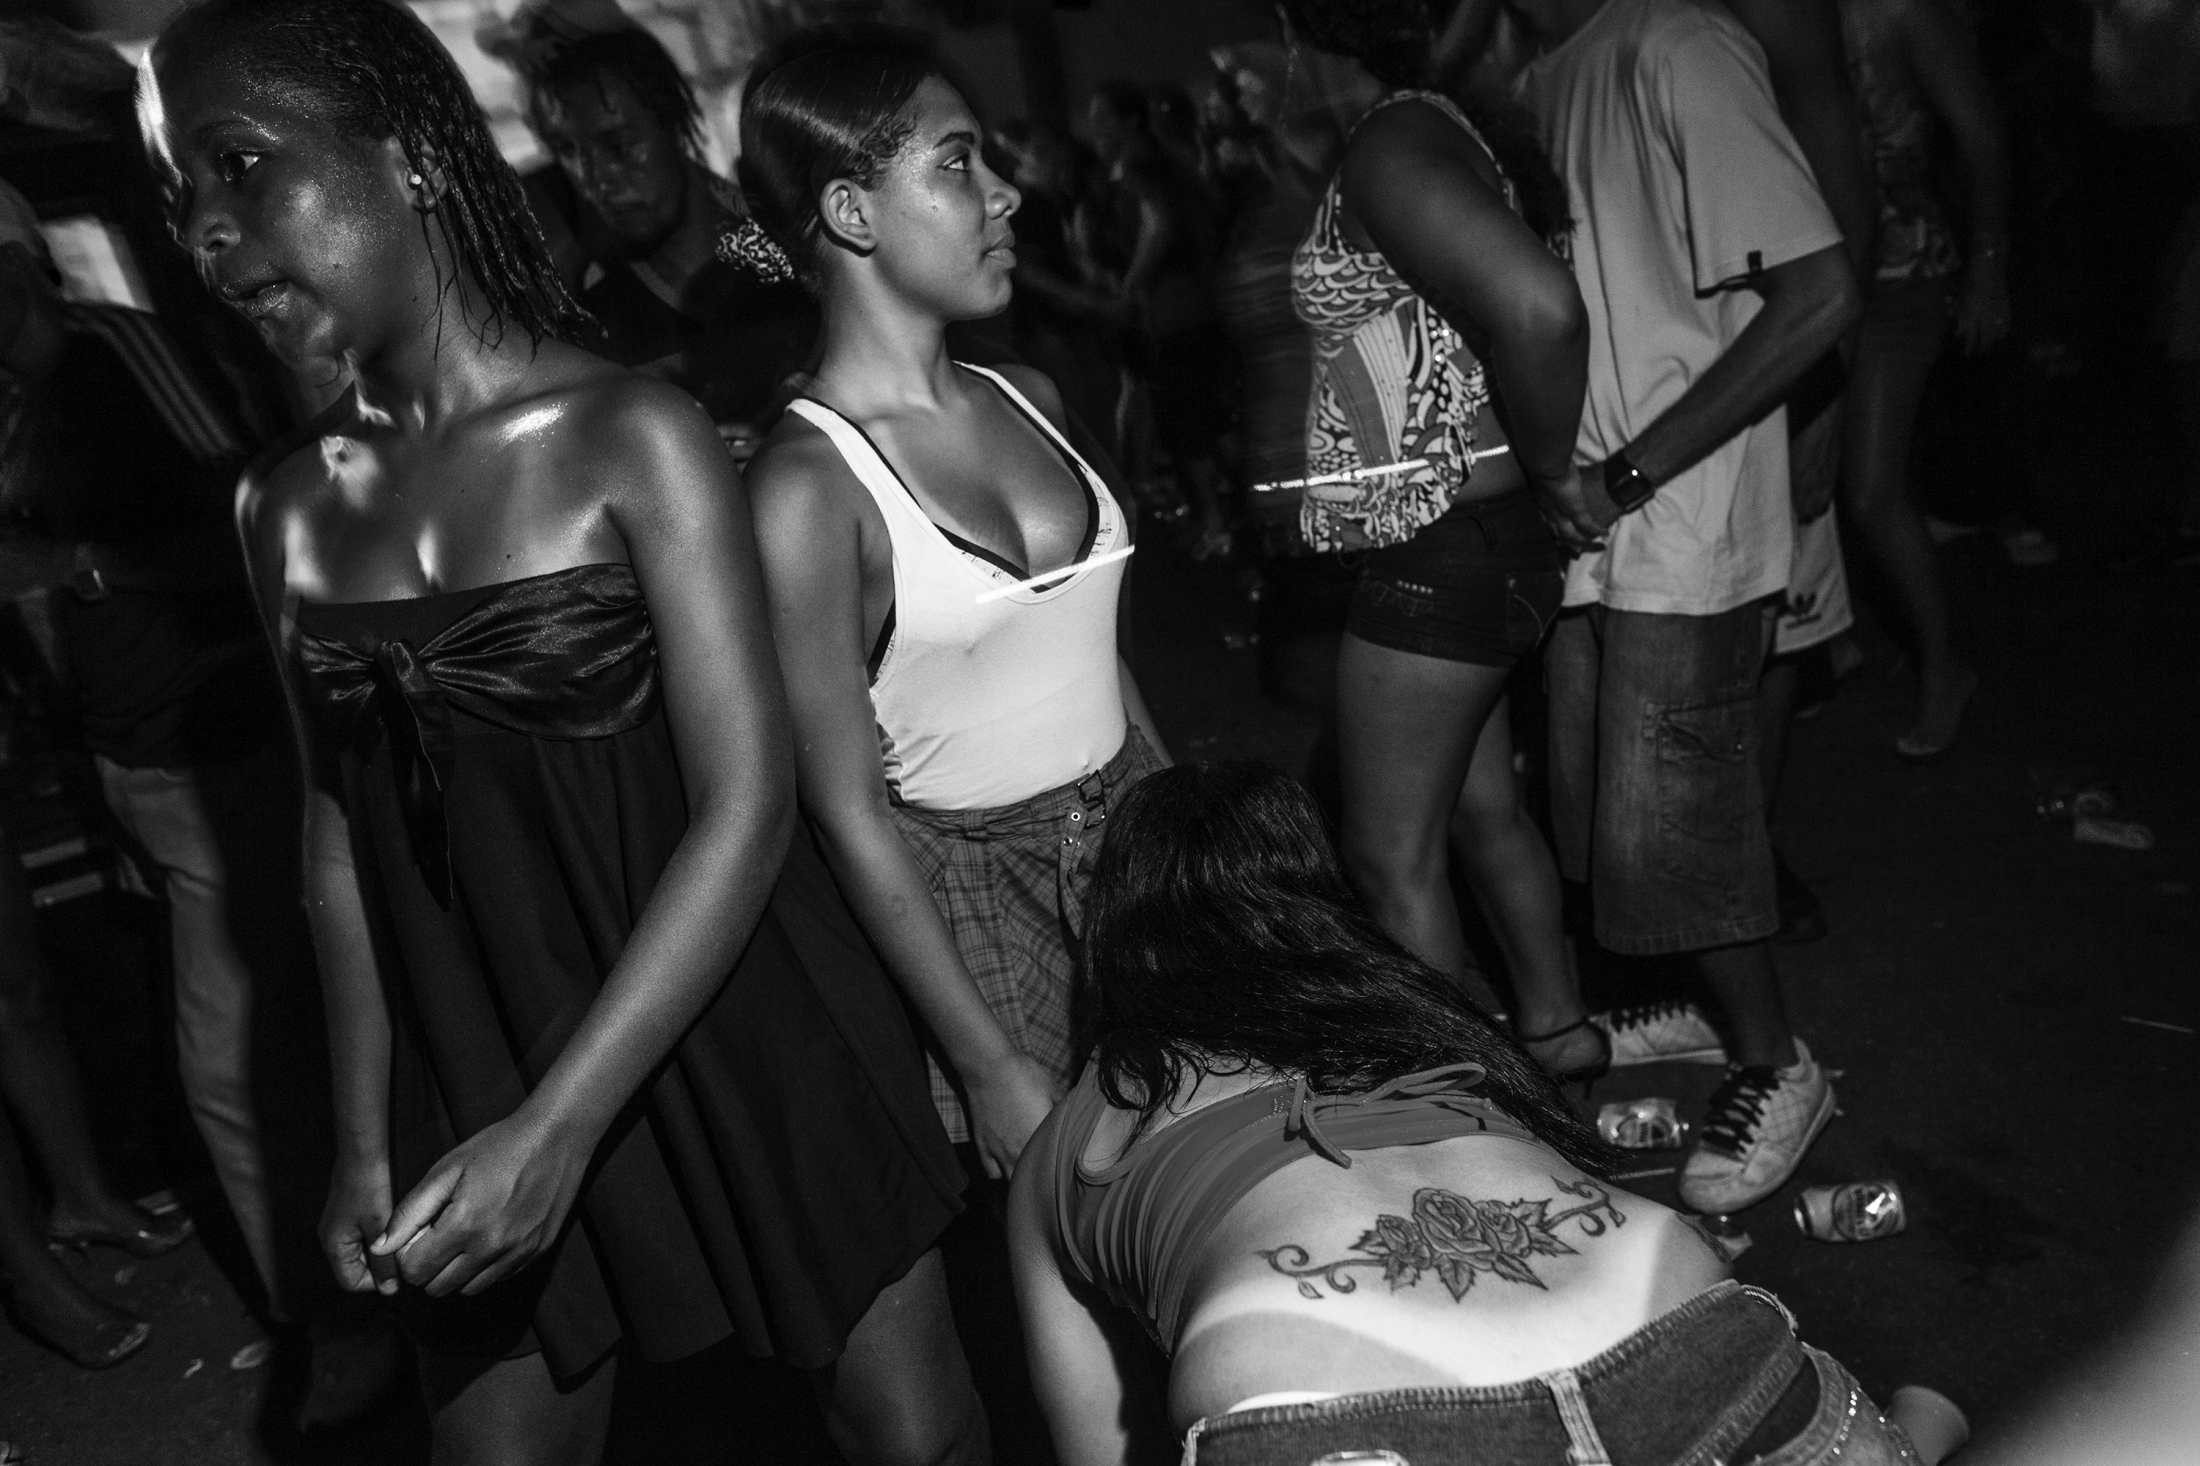 Young women dance carioca funk at a party in Rocinha favela. Carioca funk is a music style born in the favelas of Rio de Janeiro to represent the lifestyle of the slums. Now, many of its lyrics are pornographic and extremely violent. November 2009.